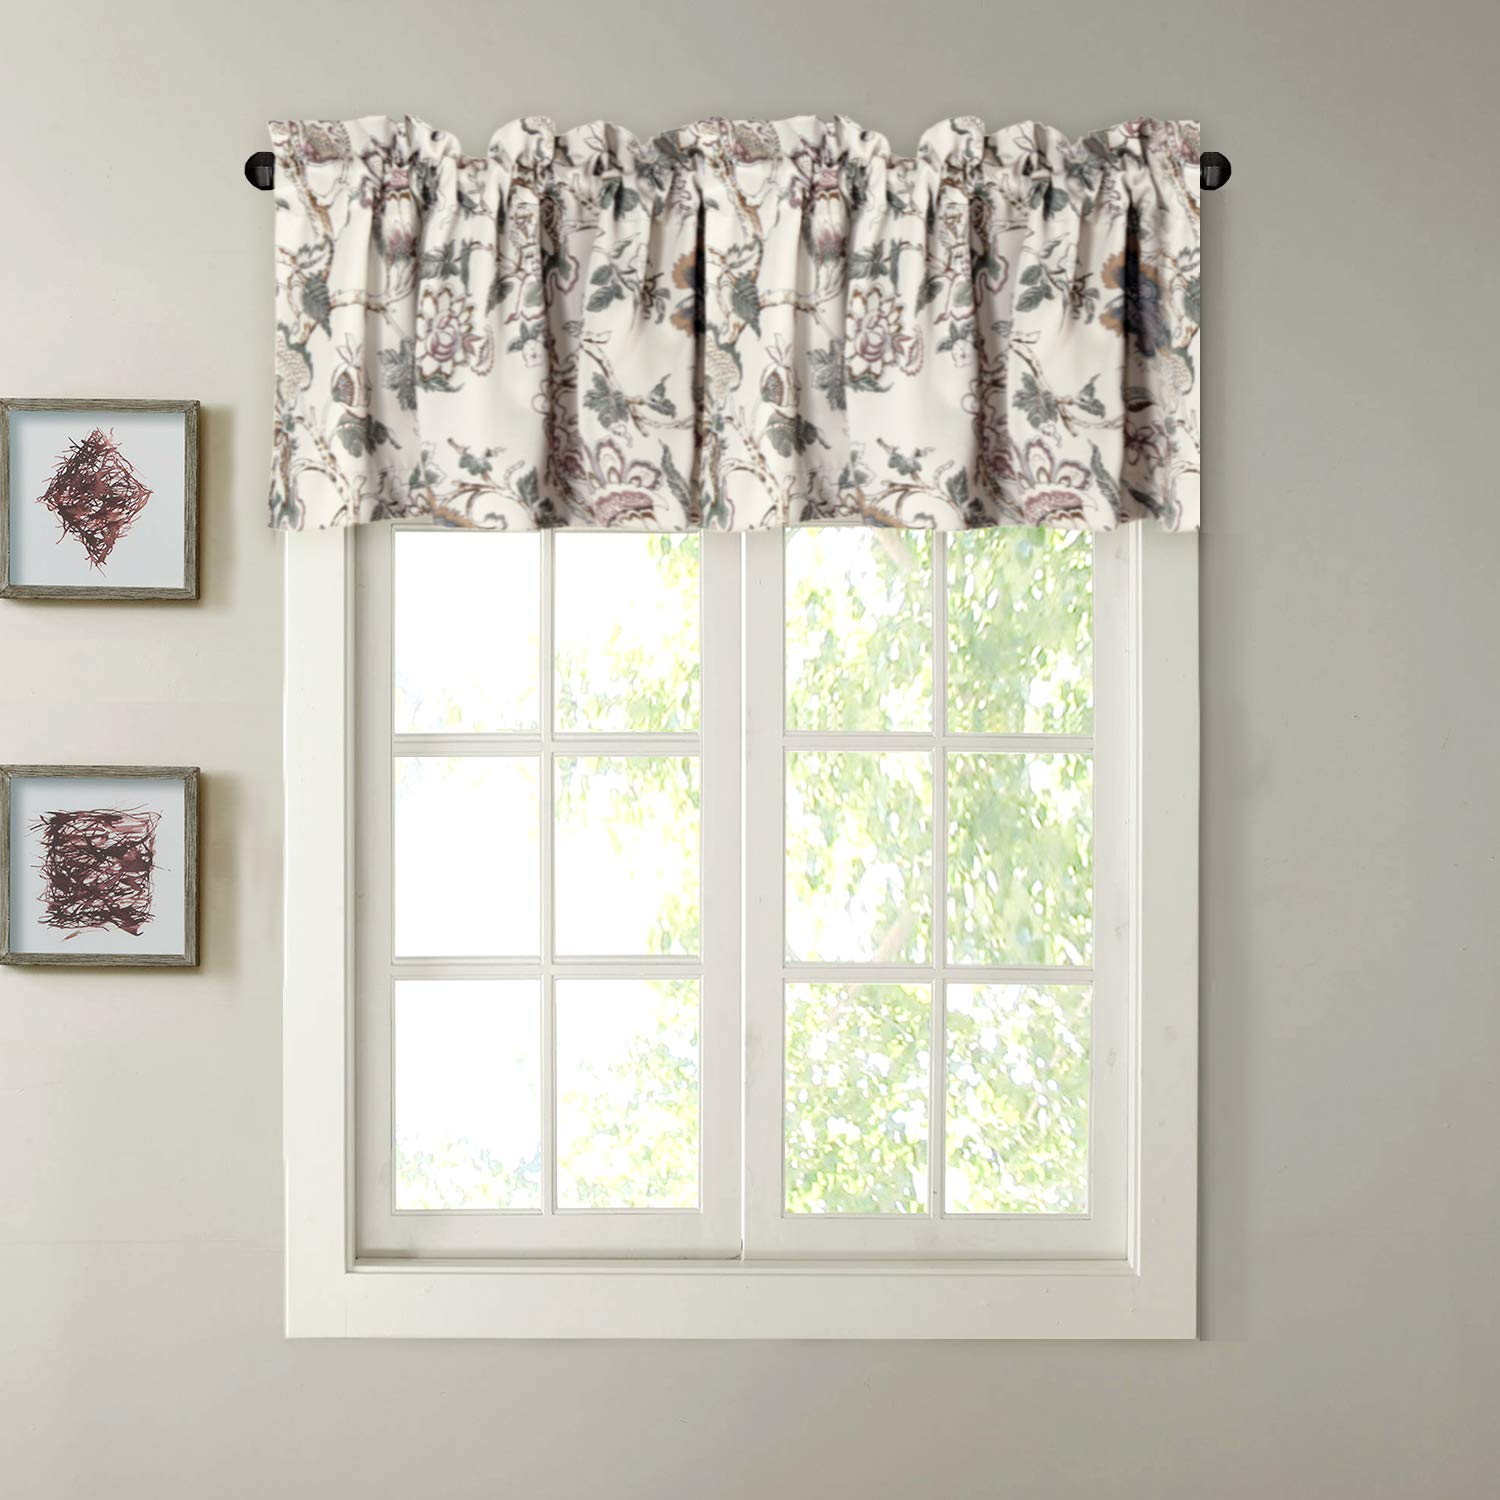 H.VERSAILTEX Window Valance Rustic Style Ultra Soft Material Suits Kitchen Bath Laundry Bedroom Living Room (Rod Pocket, 58 15 inch, Vintage Floral Pattern in Sage Brown, Set of 1)